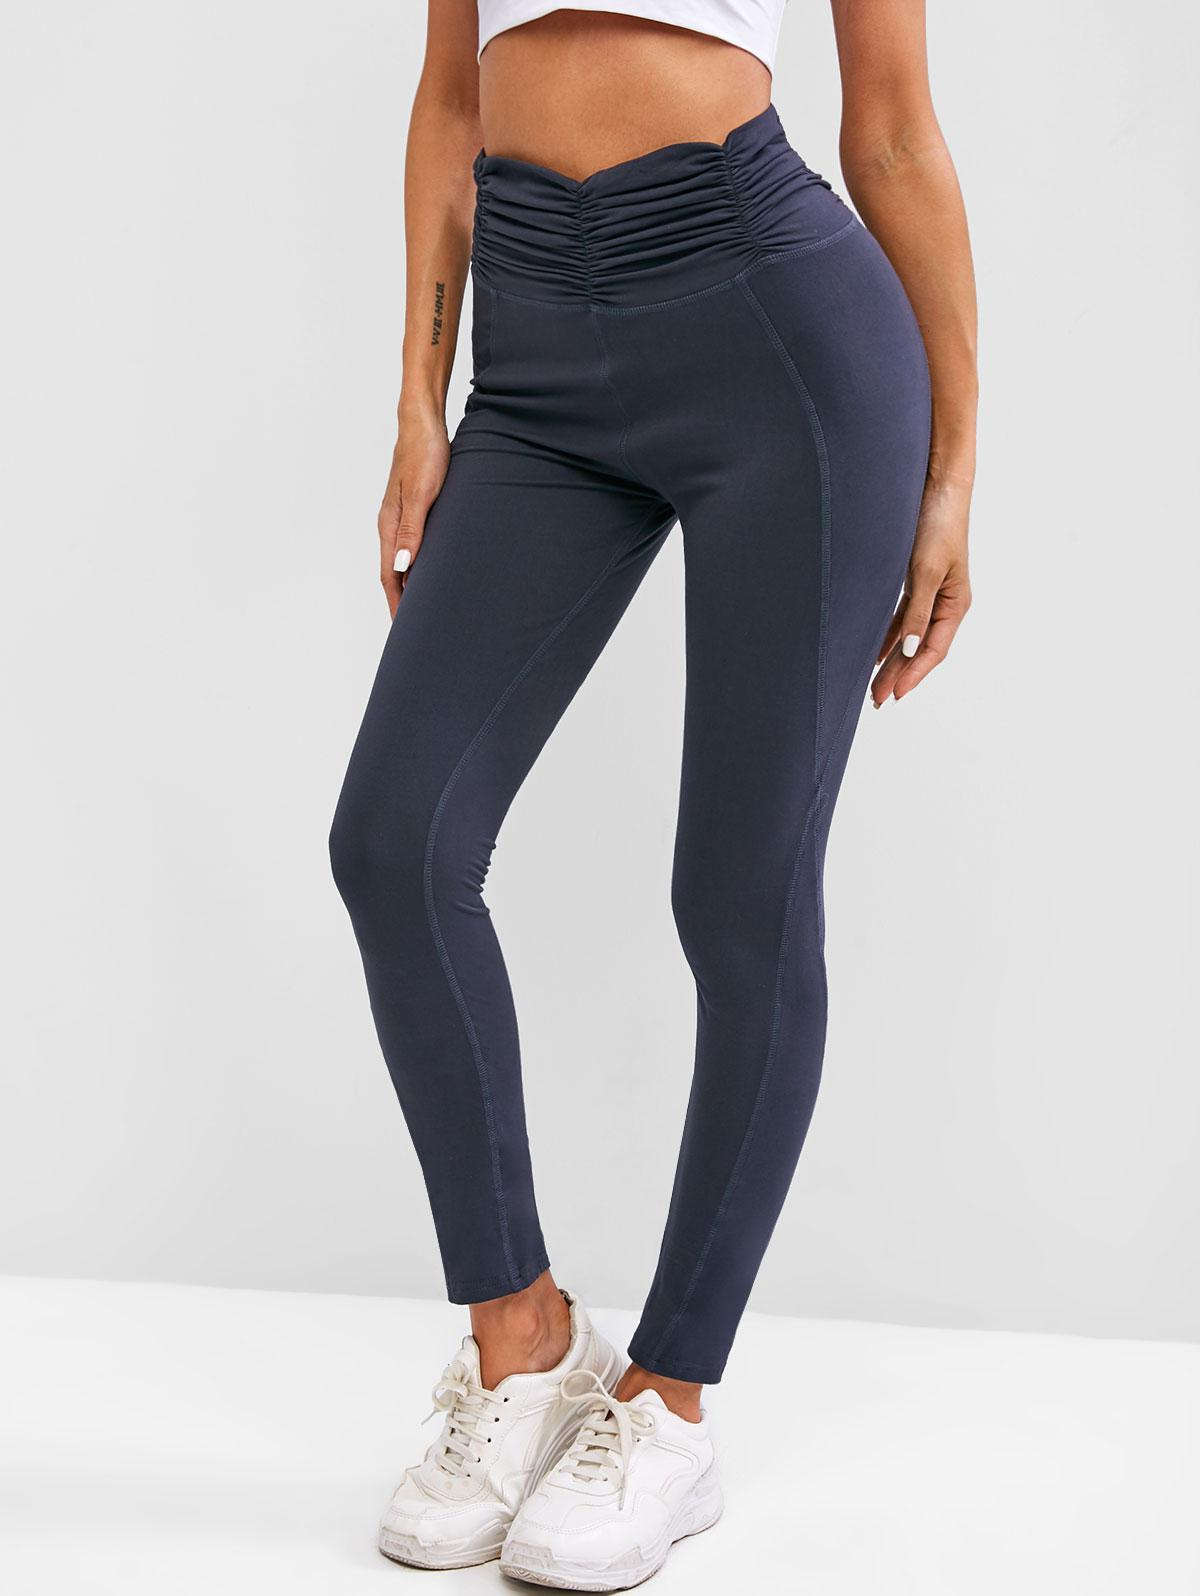 Ruched Waist Wide Waistband Workout Gym Leggings